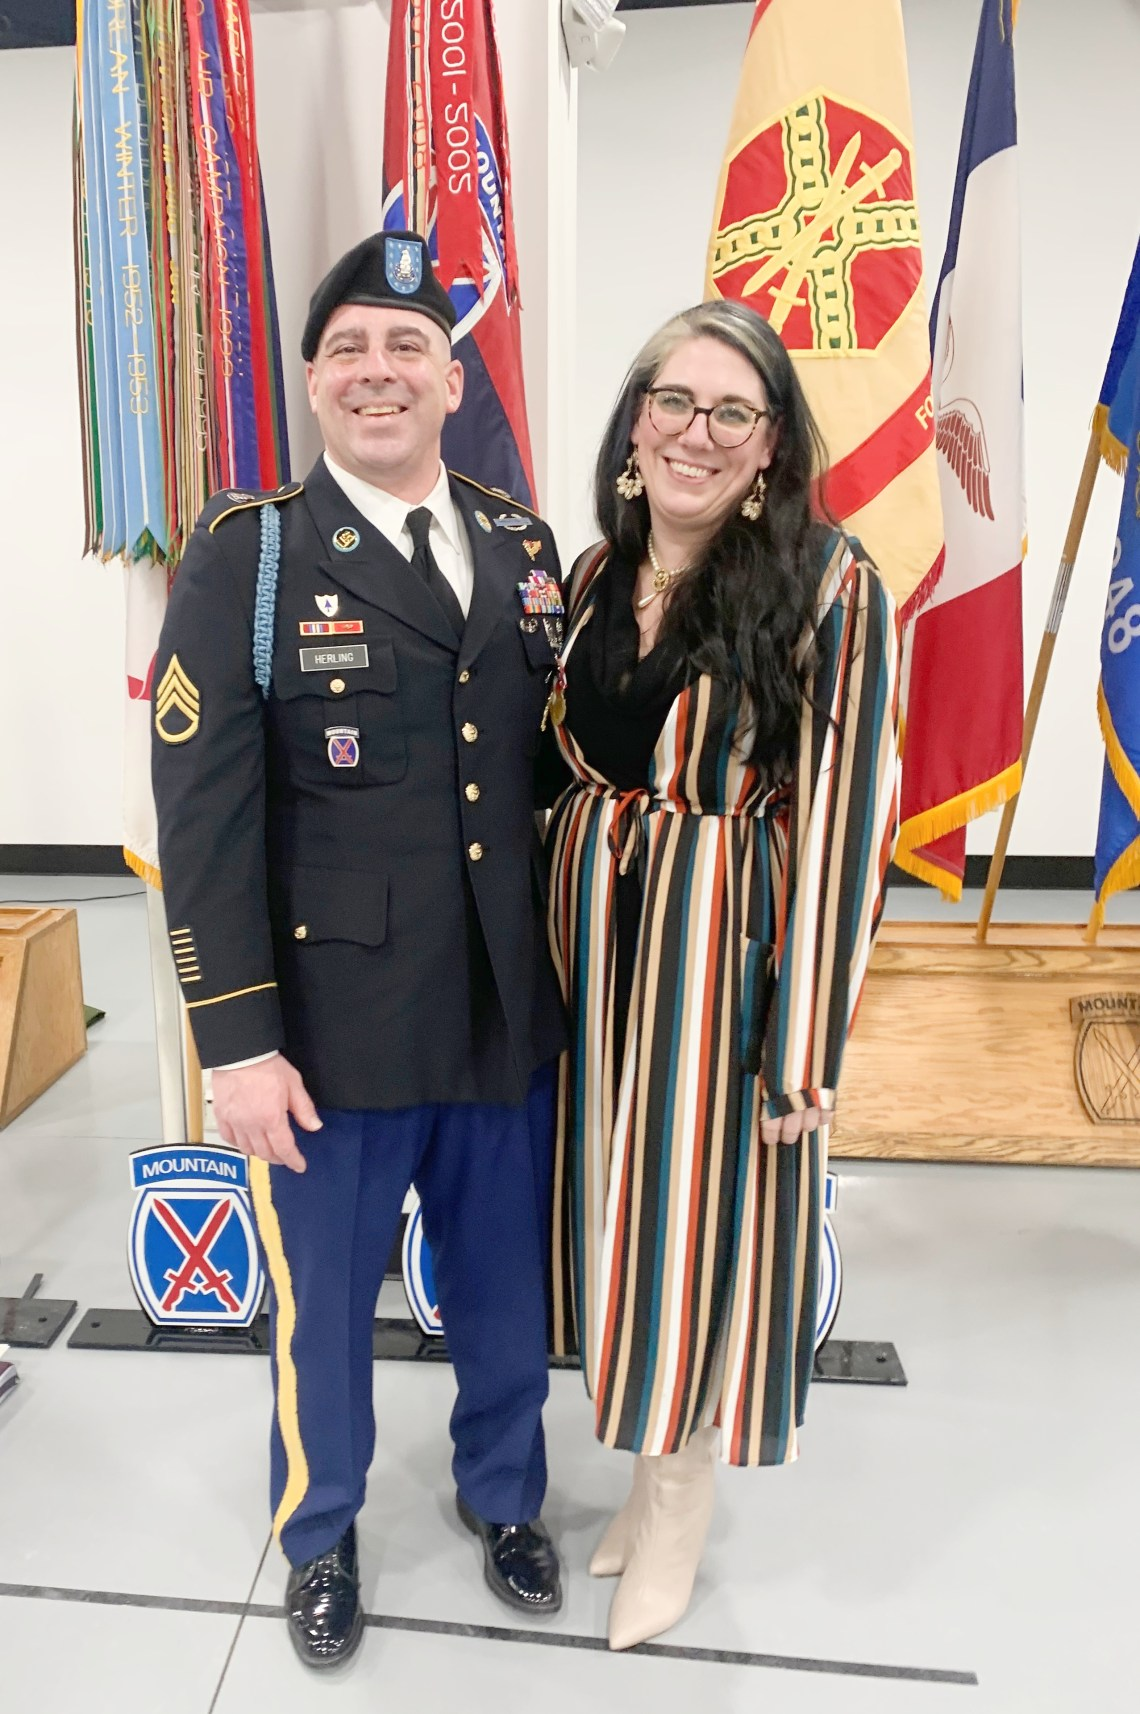 Army retirement, Shelbee on the Edge